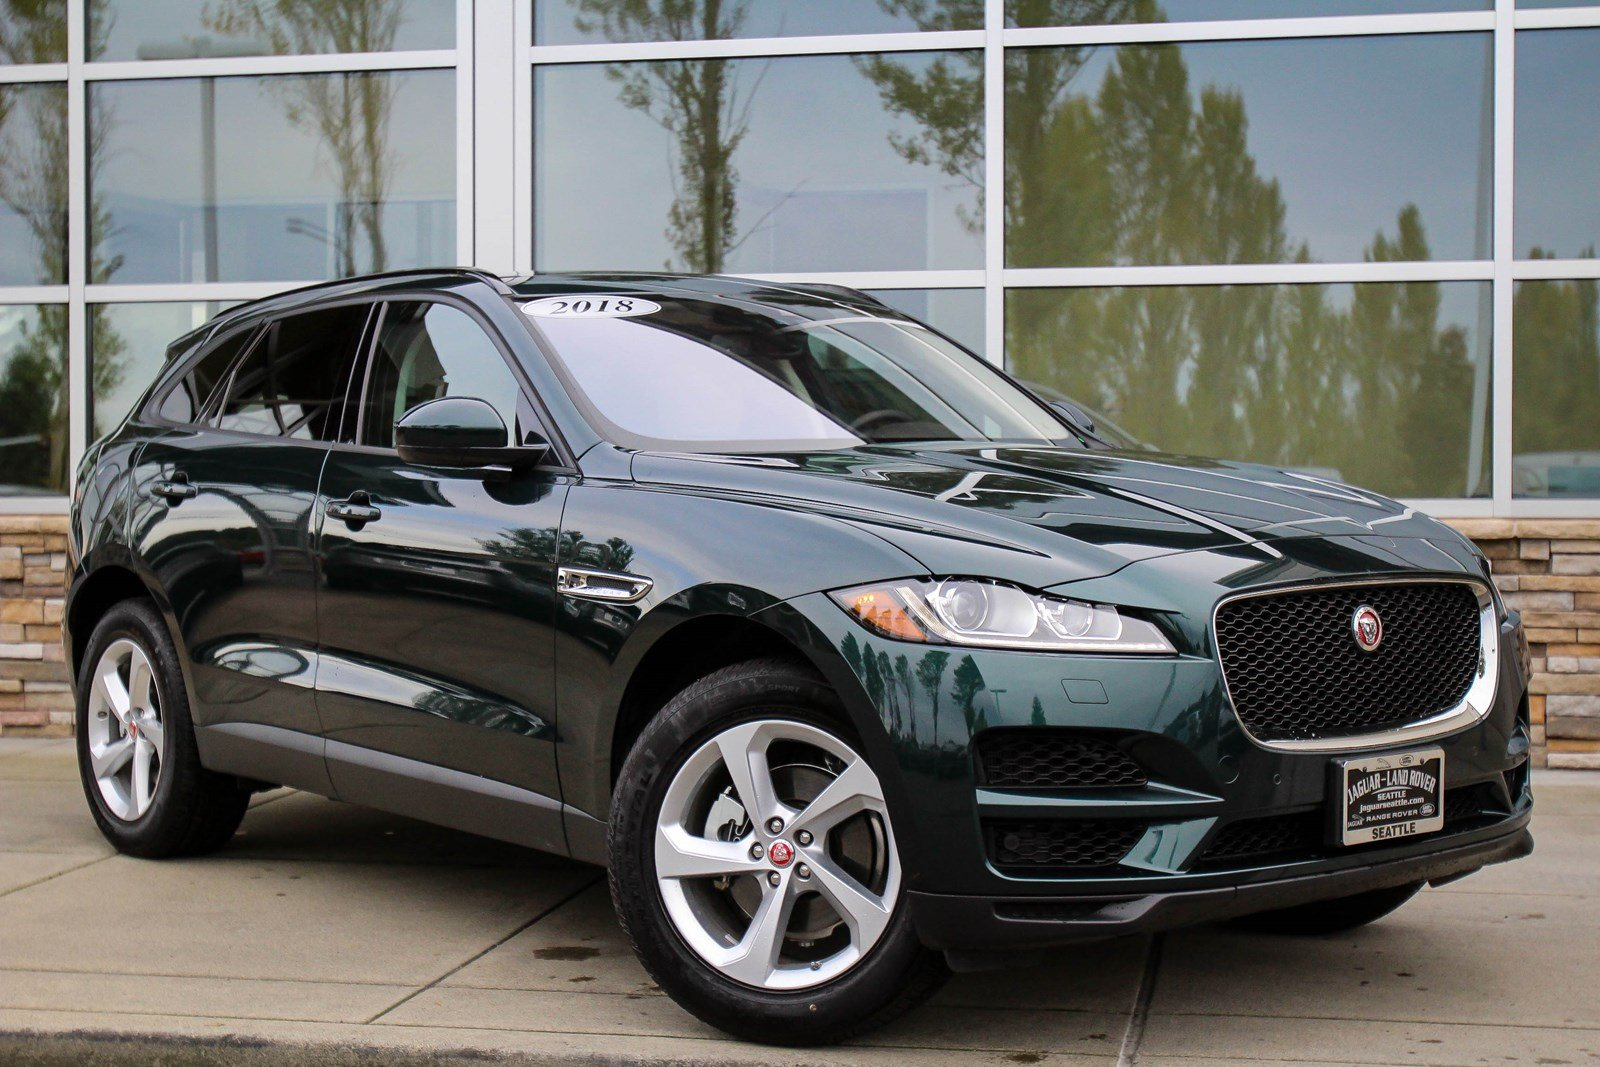 pre owned 2018 jaguar f pace 25t premium sport utility in bellevue s10655 jaguar bellevue. Black Bedroom Furniture Sets. Home Design Ideas